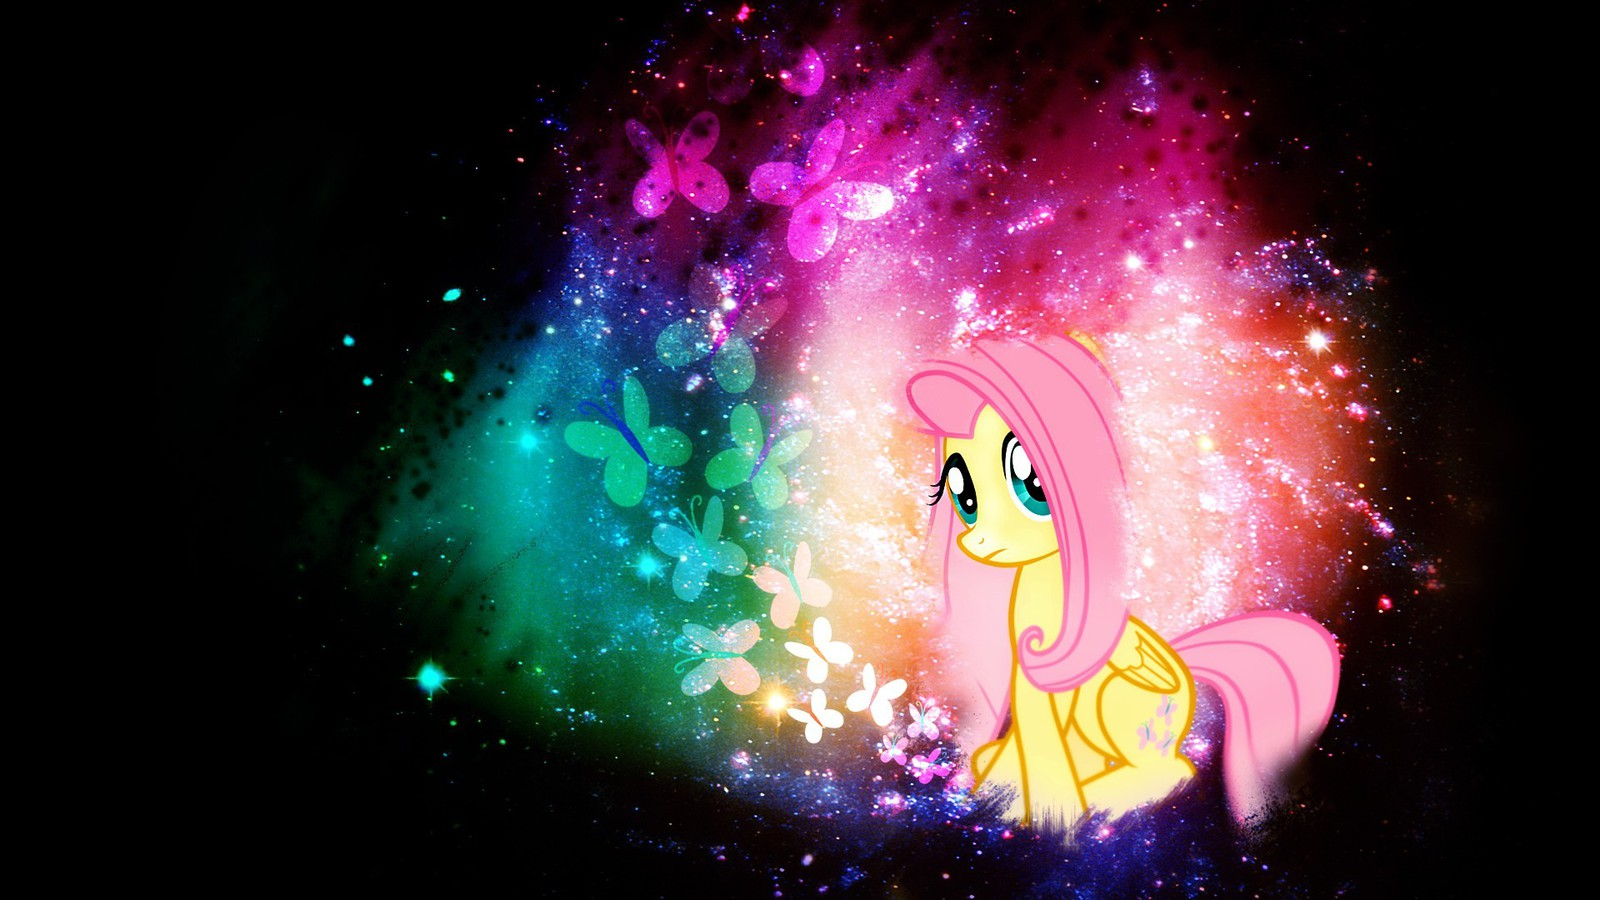 My Little Pony Wall Paper: Faint My Little Pony: Friendship Is Magic Wallpaper